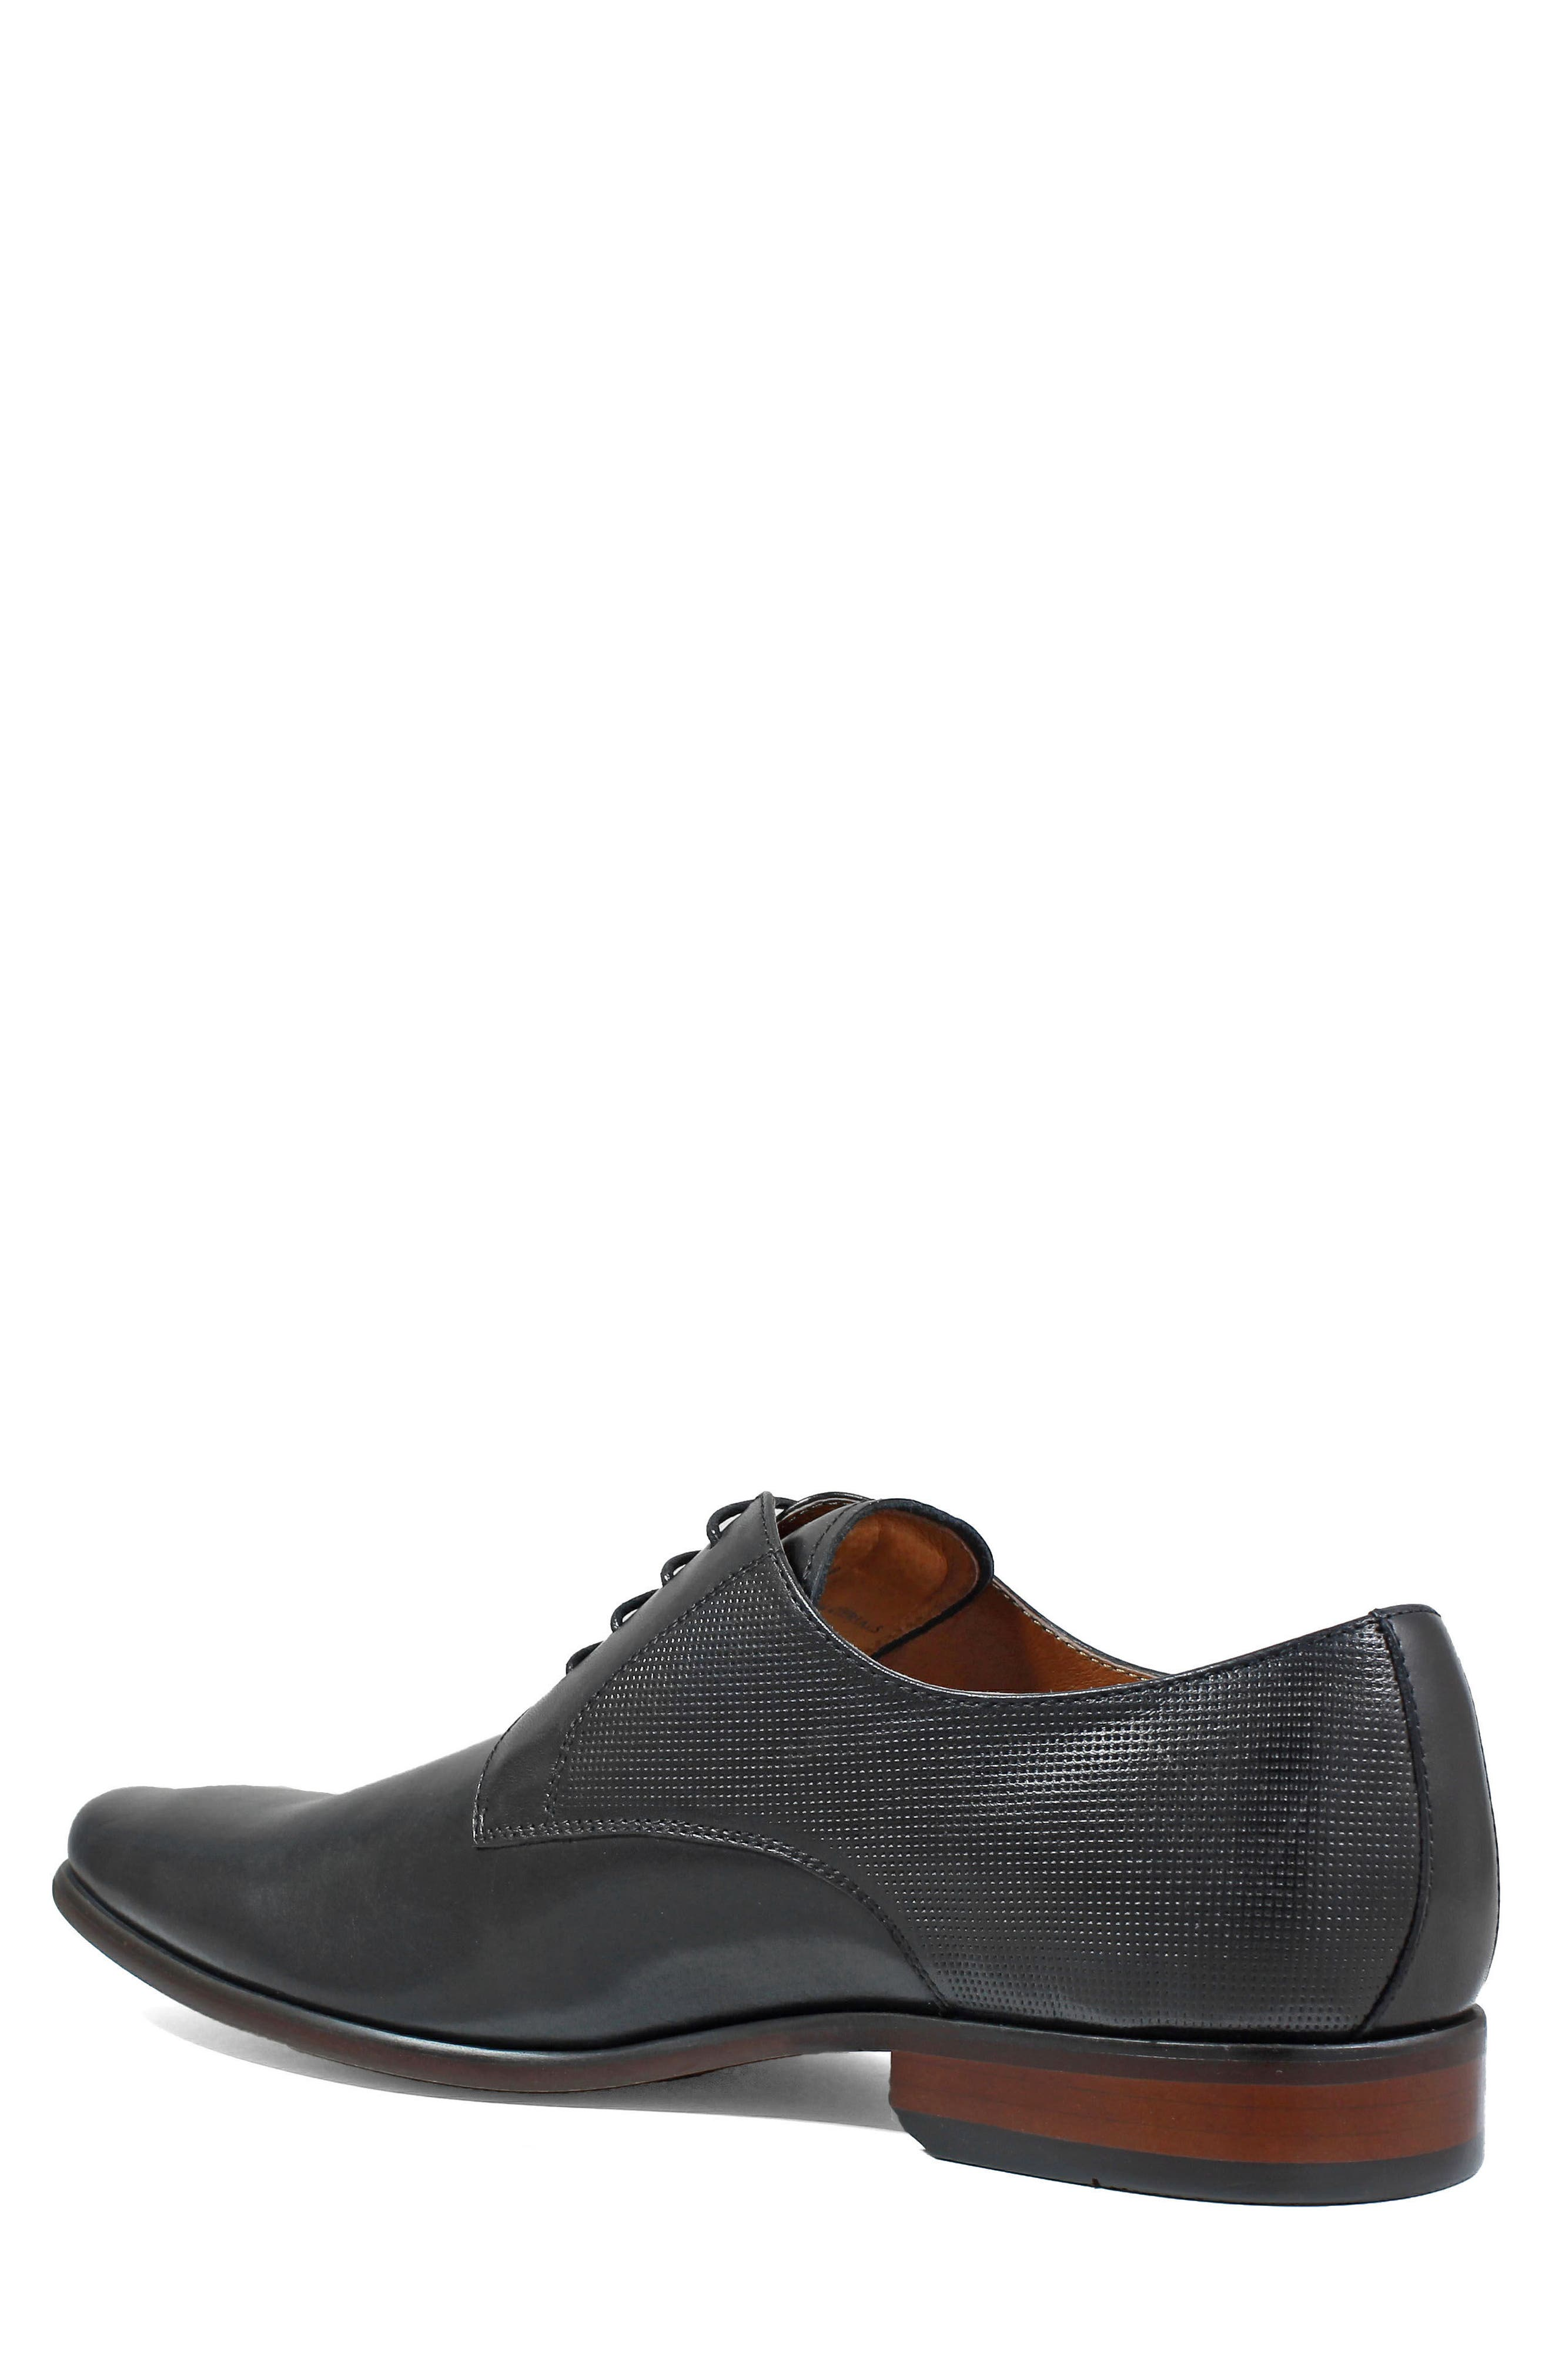 Postino Textured Plain Toe Derby,                             Alternate thumbnail 2, color,                             BLACK LEATHER